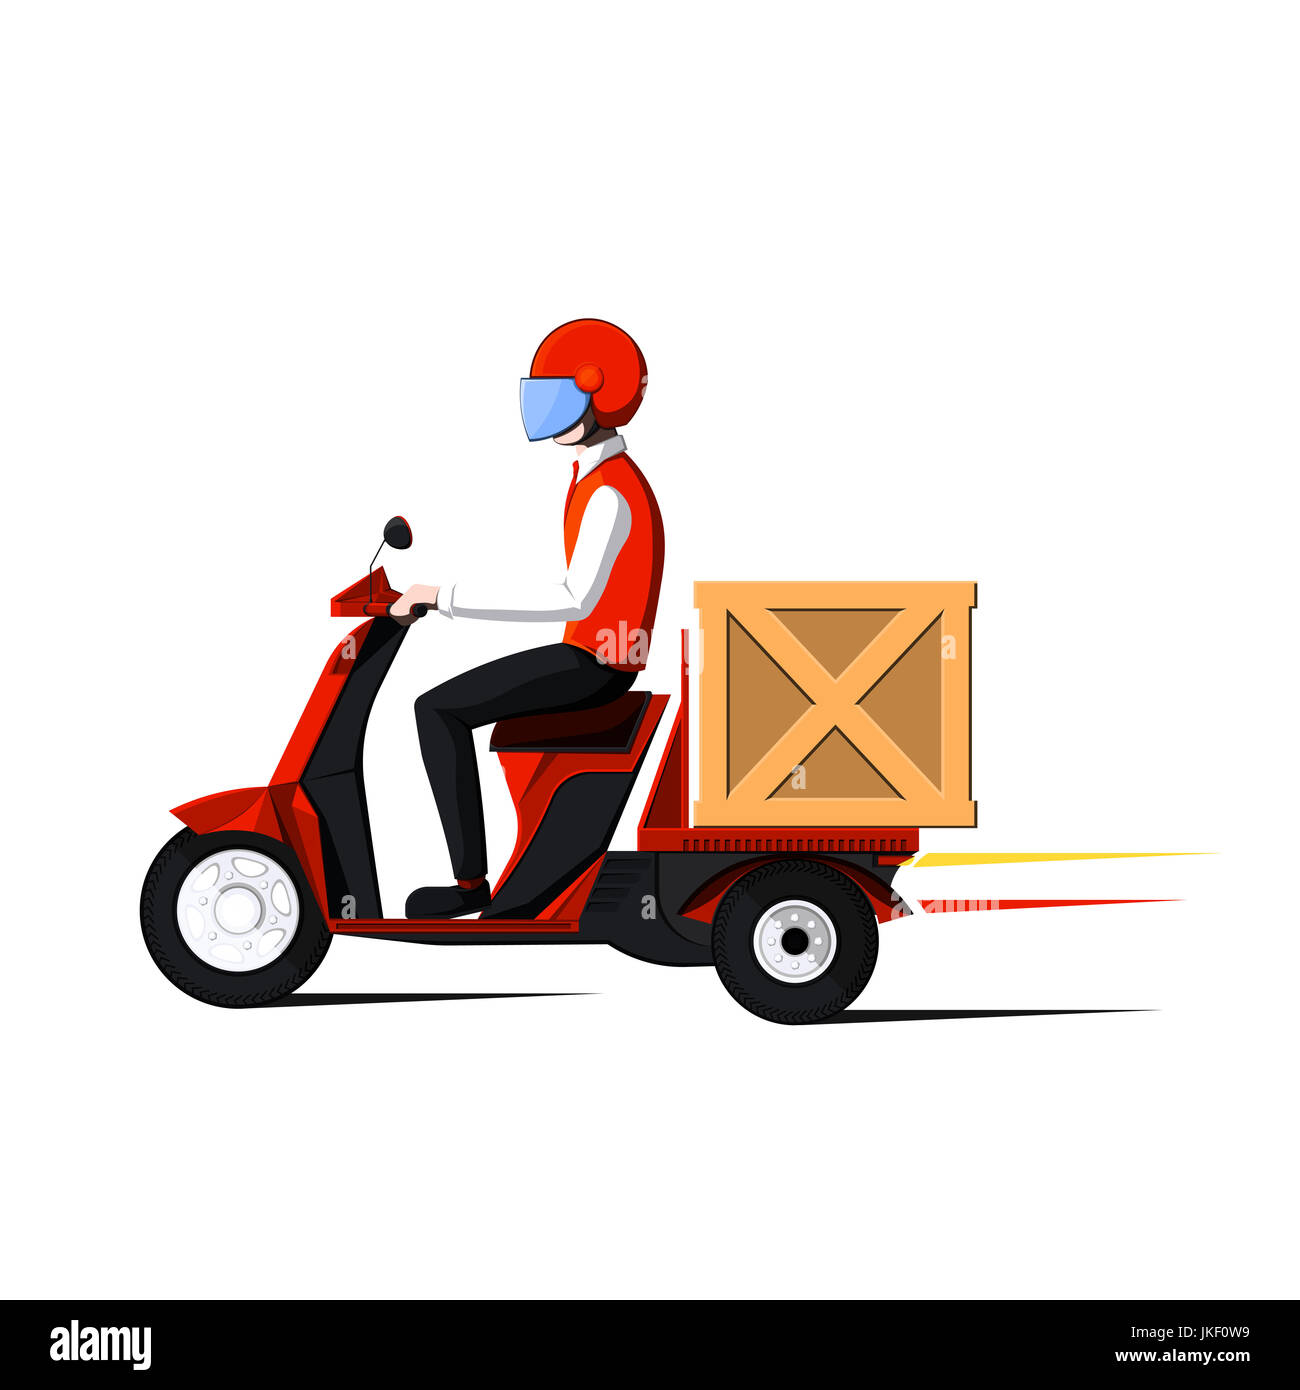 Fast delivery service. Man rides on motor scooter. Flat illustration on white background. - Stock Image